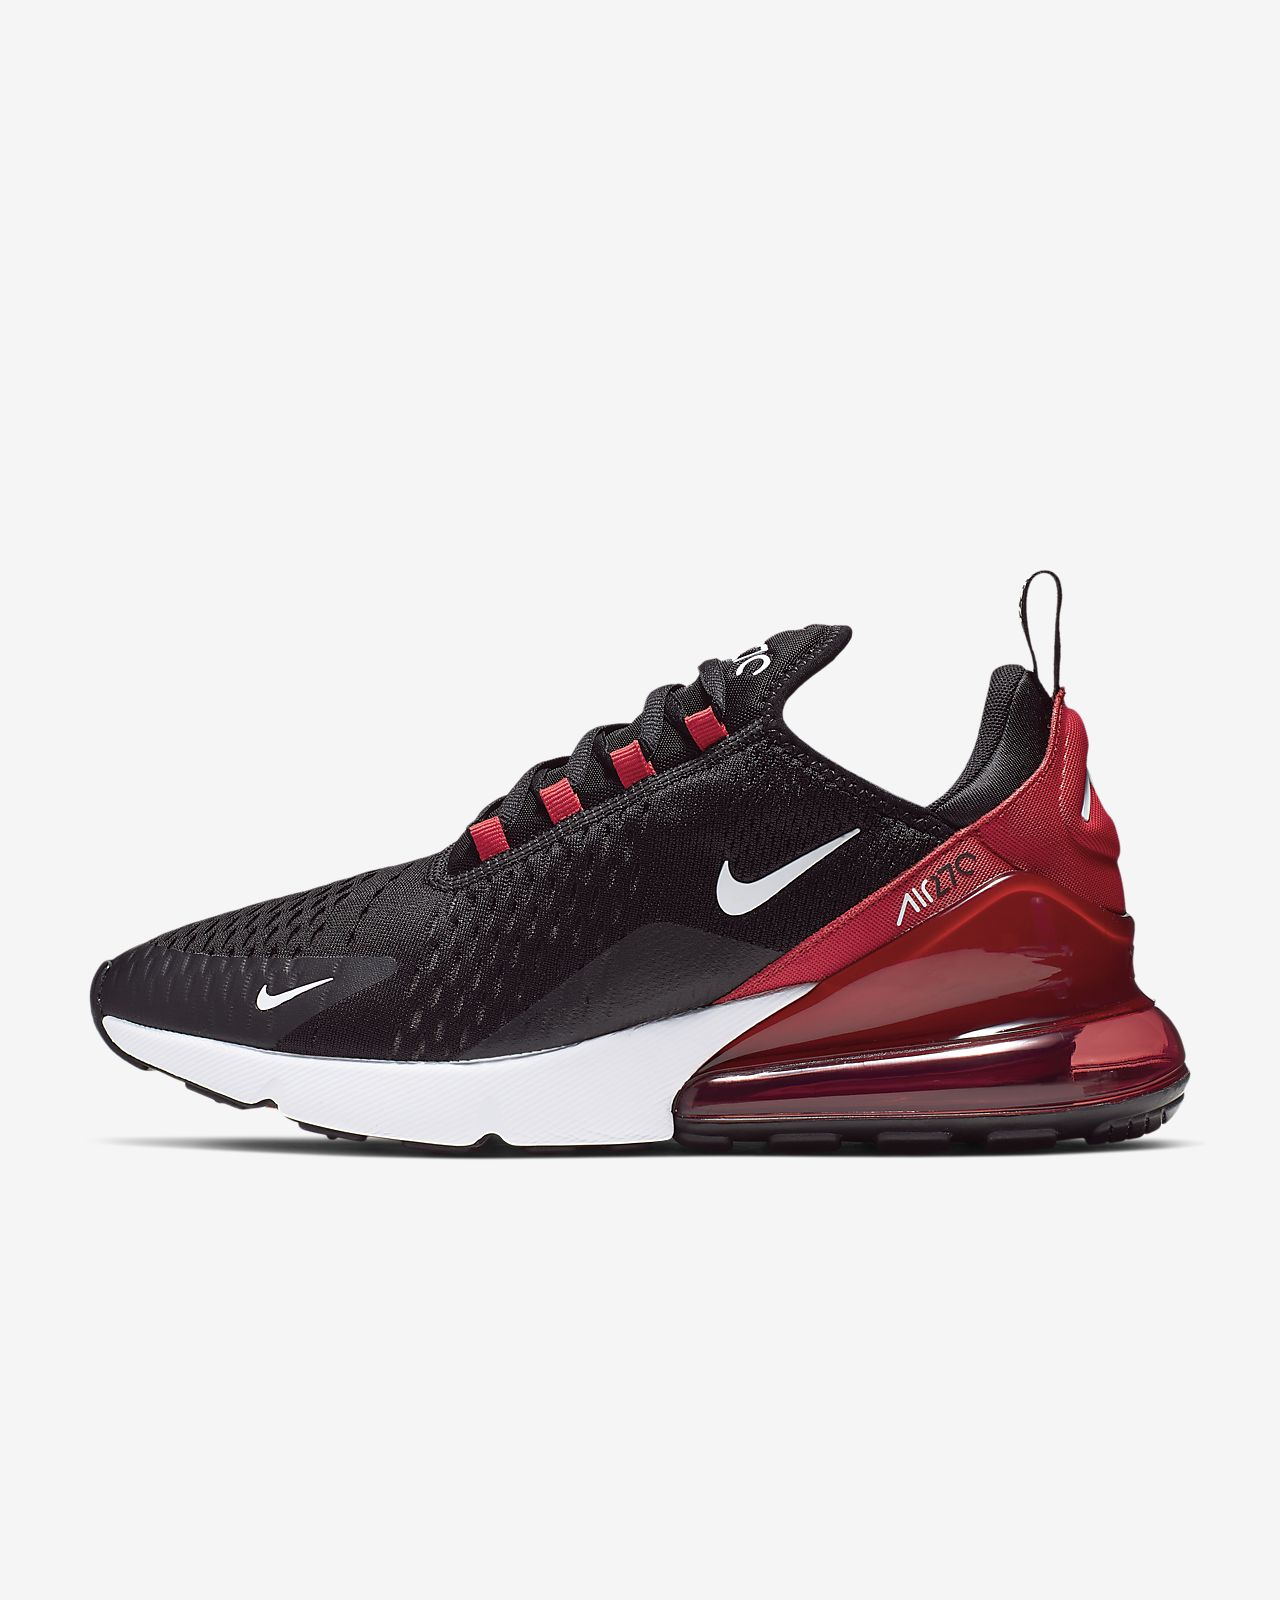 d91d74c06ffb6 Nike Air Max 270 Men s Shoe. Nike.com GB